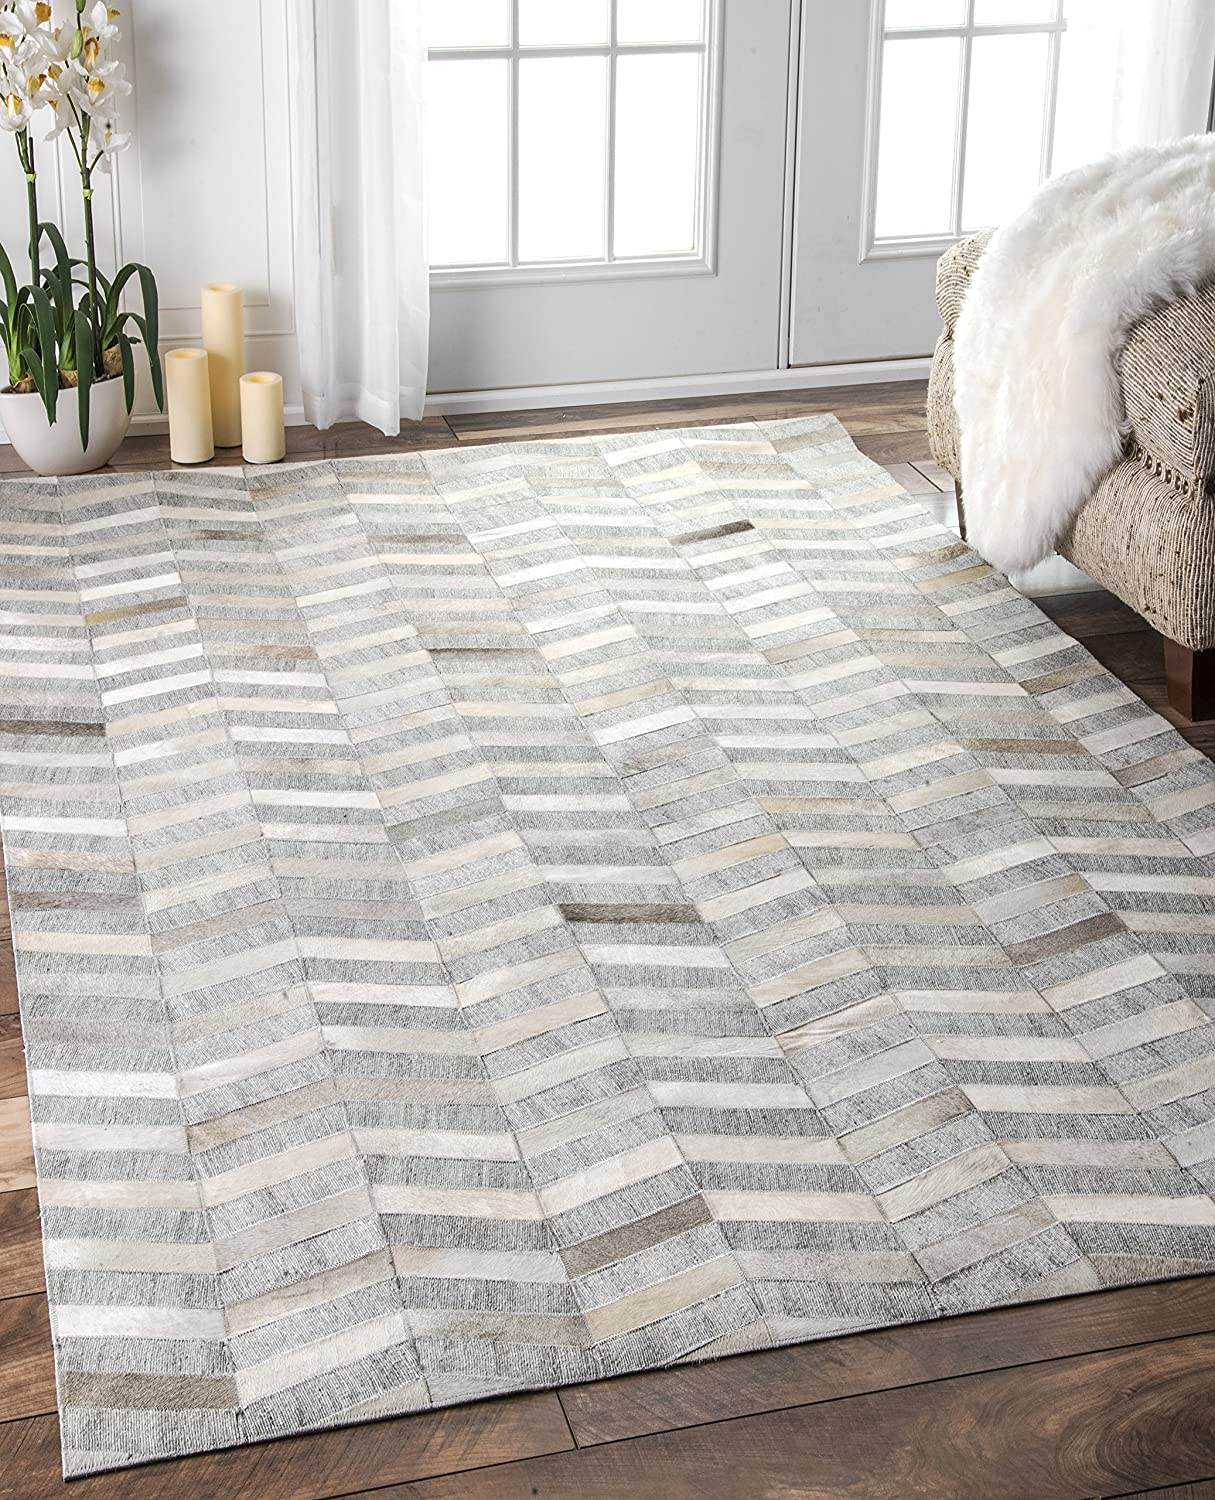 Amazon.com : Nuloom 8u0027 X 10u0027 Handmade Cowhide Mitch Rug In Silver : Garden  U0026 Outdoor